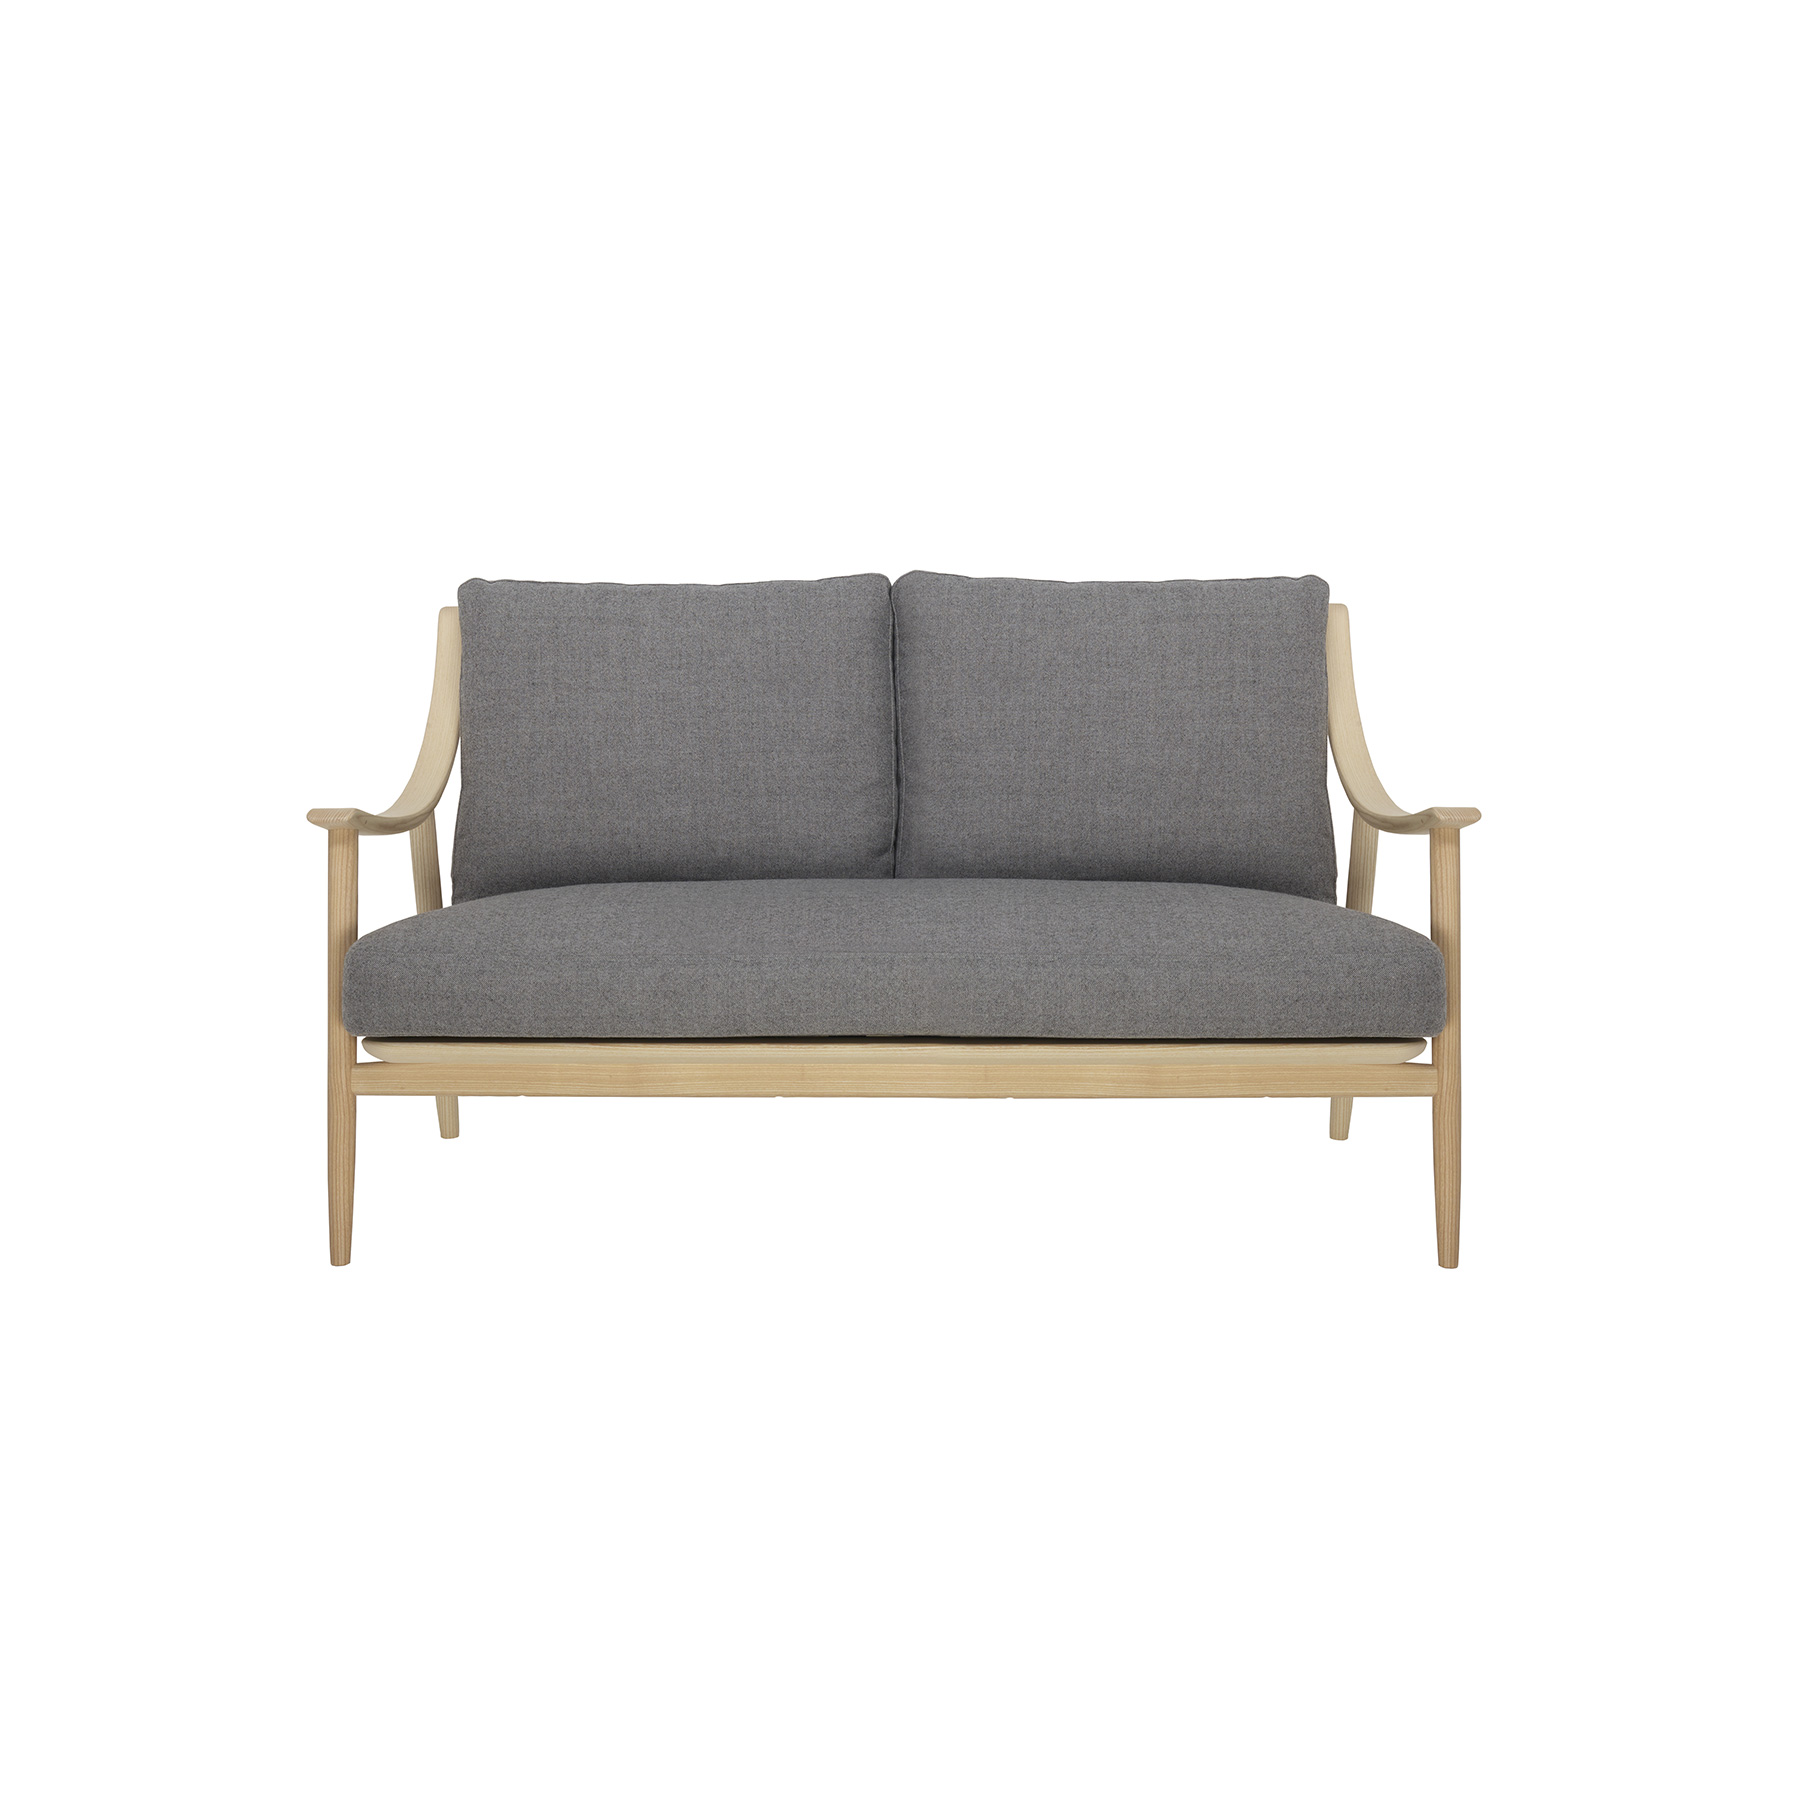 Marino Sofa - The Marino chair created in solid ash timber references the qualities and features of Ercol design classics through considered design aesthetic. Its elegance and flowing lines, featuring turned elements, combined with exceptional craftsmanship create a striking, contemporary armchair. The Marino collection is inspired by the Ercol design classics, its smooth flowing elegant lines are created by steam bending the solid ash arms, using traditional craftsmanship and modern furniture making techniques, to create a strikingly contemporary and comfortable range. The Marino sofa created in solid ash references the qualities and features of ercol design classics. The smooth elegant and flowing lines are created through traditional craft, including steam bending solid timber and modern furniture making skill and techniques. The feature turned spindles, and deep cushioning combine to create a striking and contemporary sofa that is comfortable, seating three with ease. The Marino collection is finished in your choice of wood finishes and a selection of paint finishes that both protects the timber whilst enabling you to choose the look to match your style and décor.   | Matter of Stuff